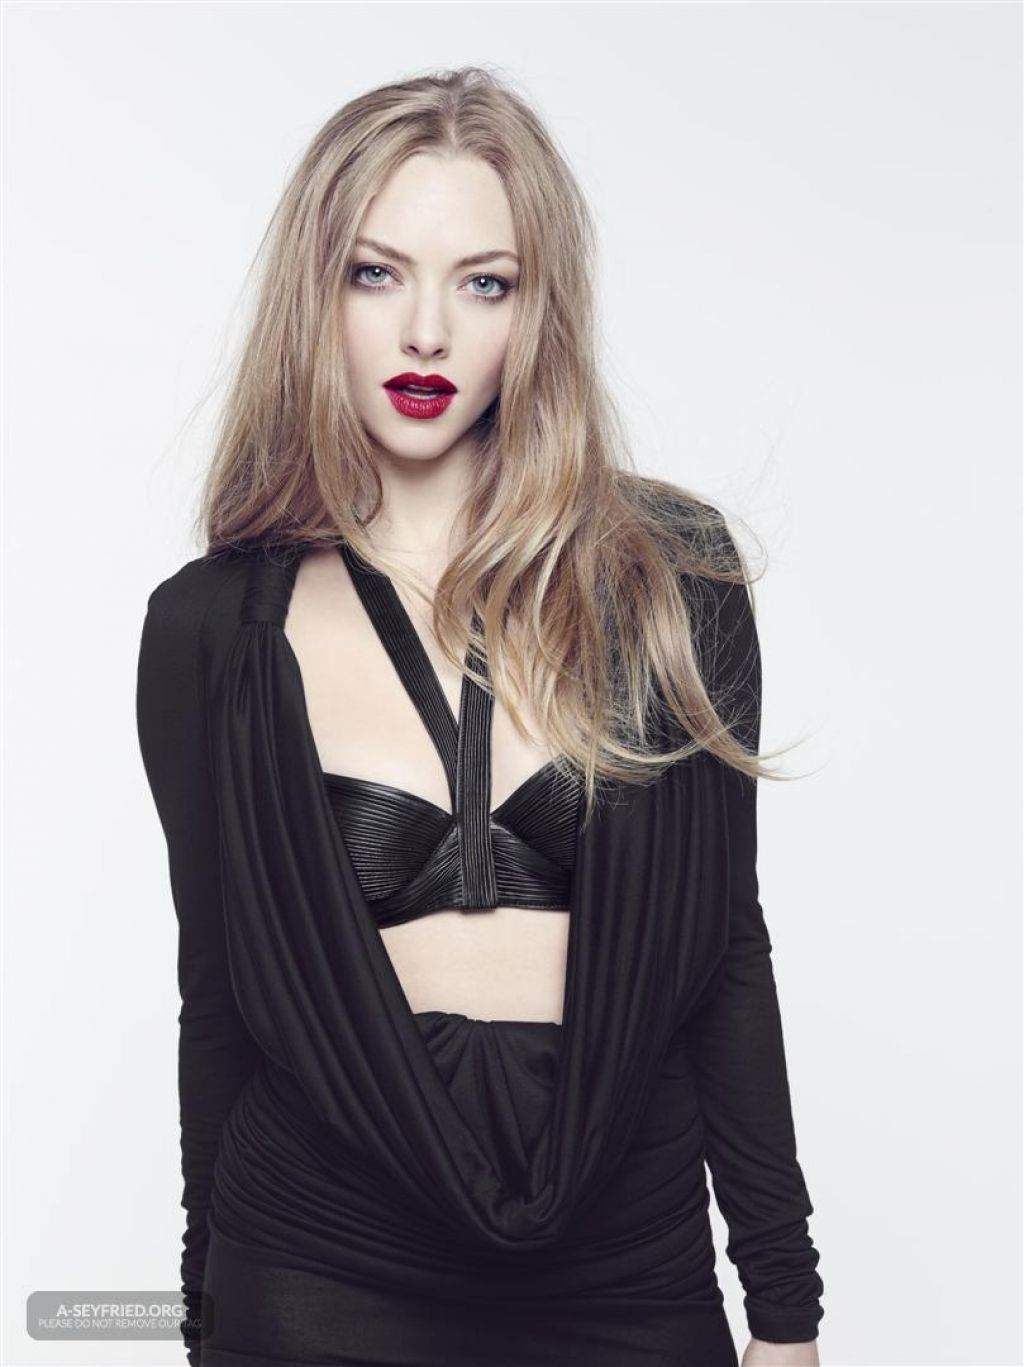 Amanda Seyfried Photoshoot for Saturday Night Live 2014